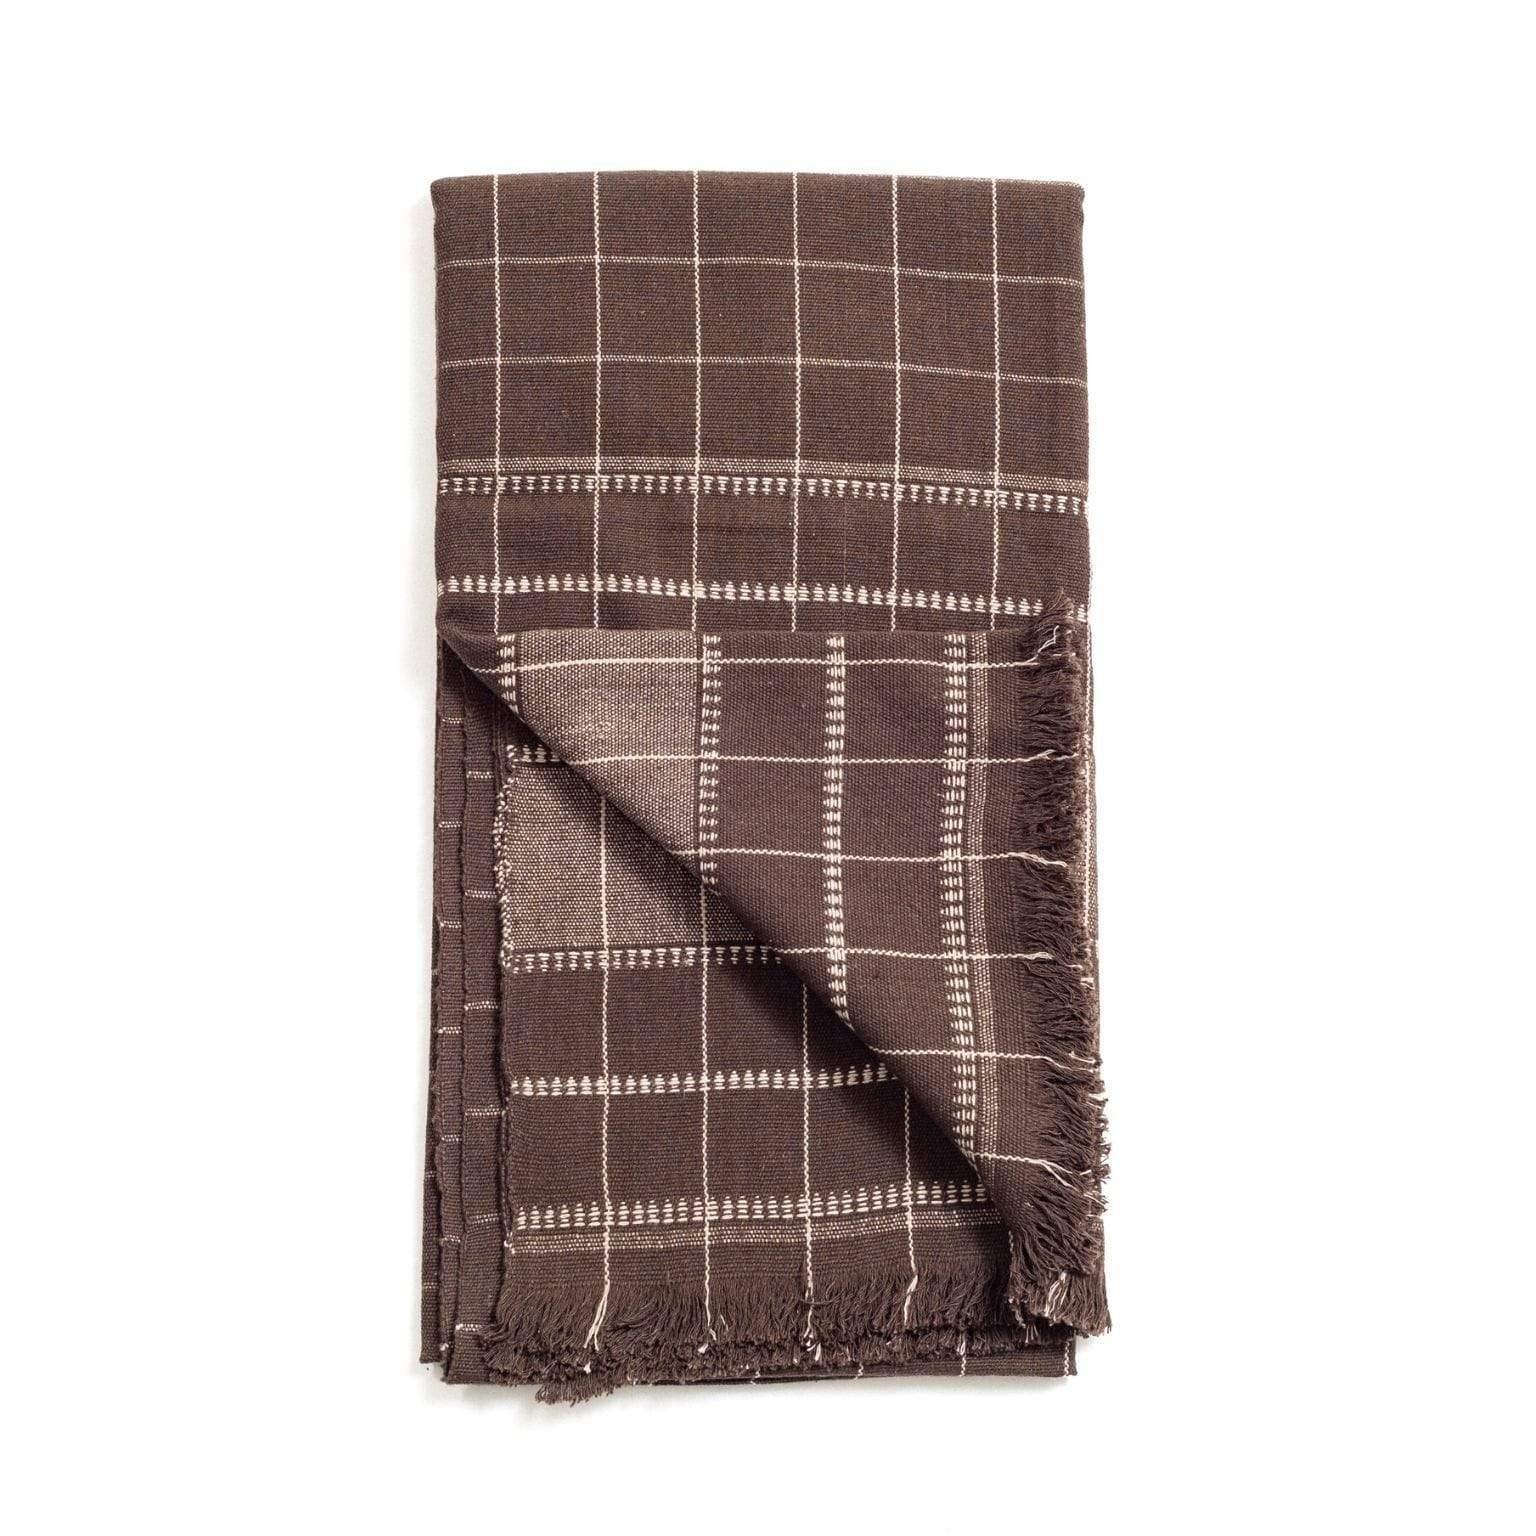 Studio Variously Cushions + Throws Treacle Brown Throw